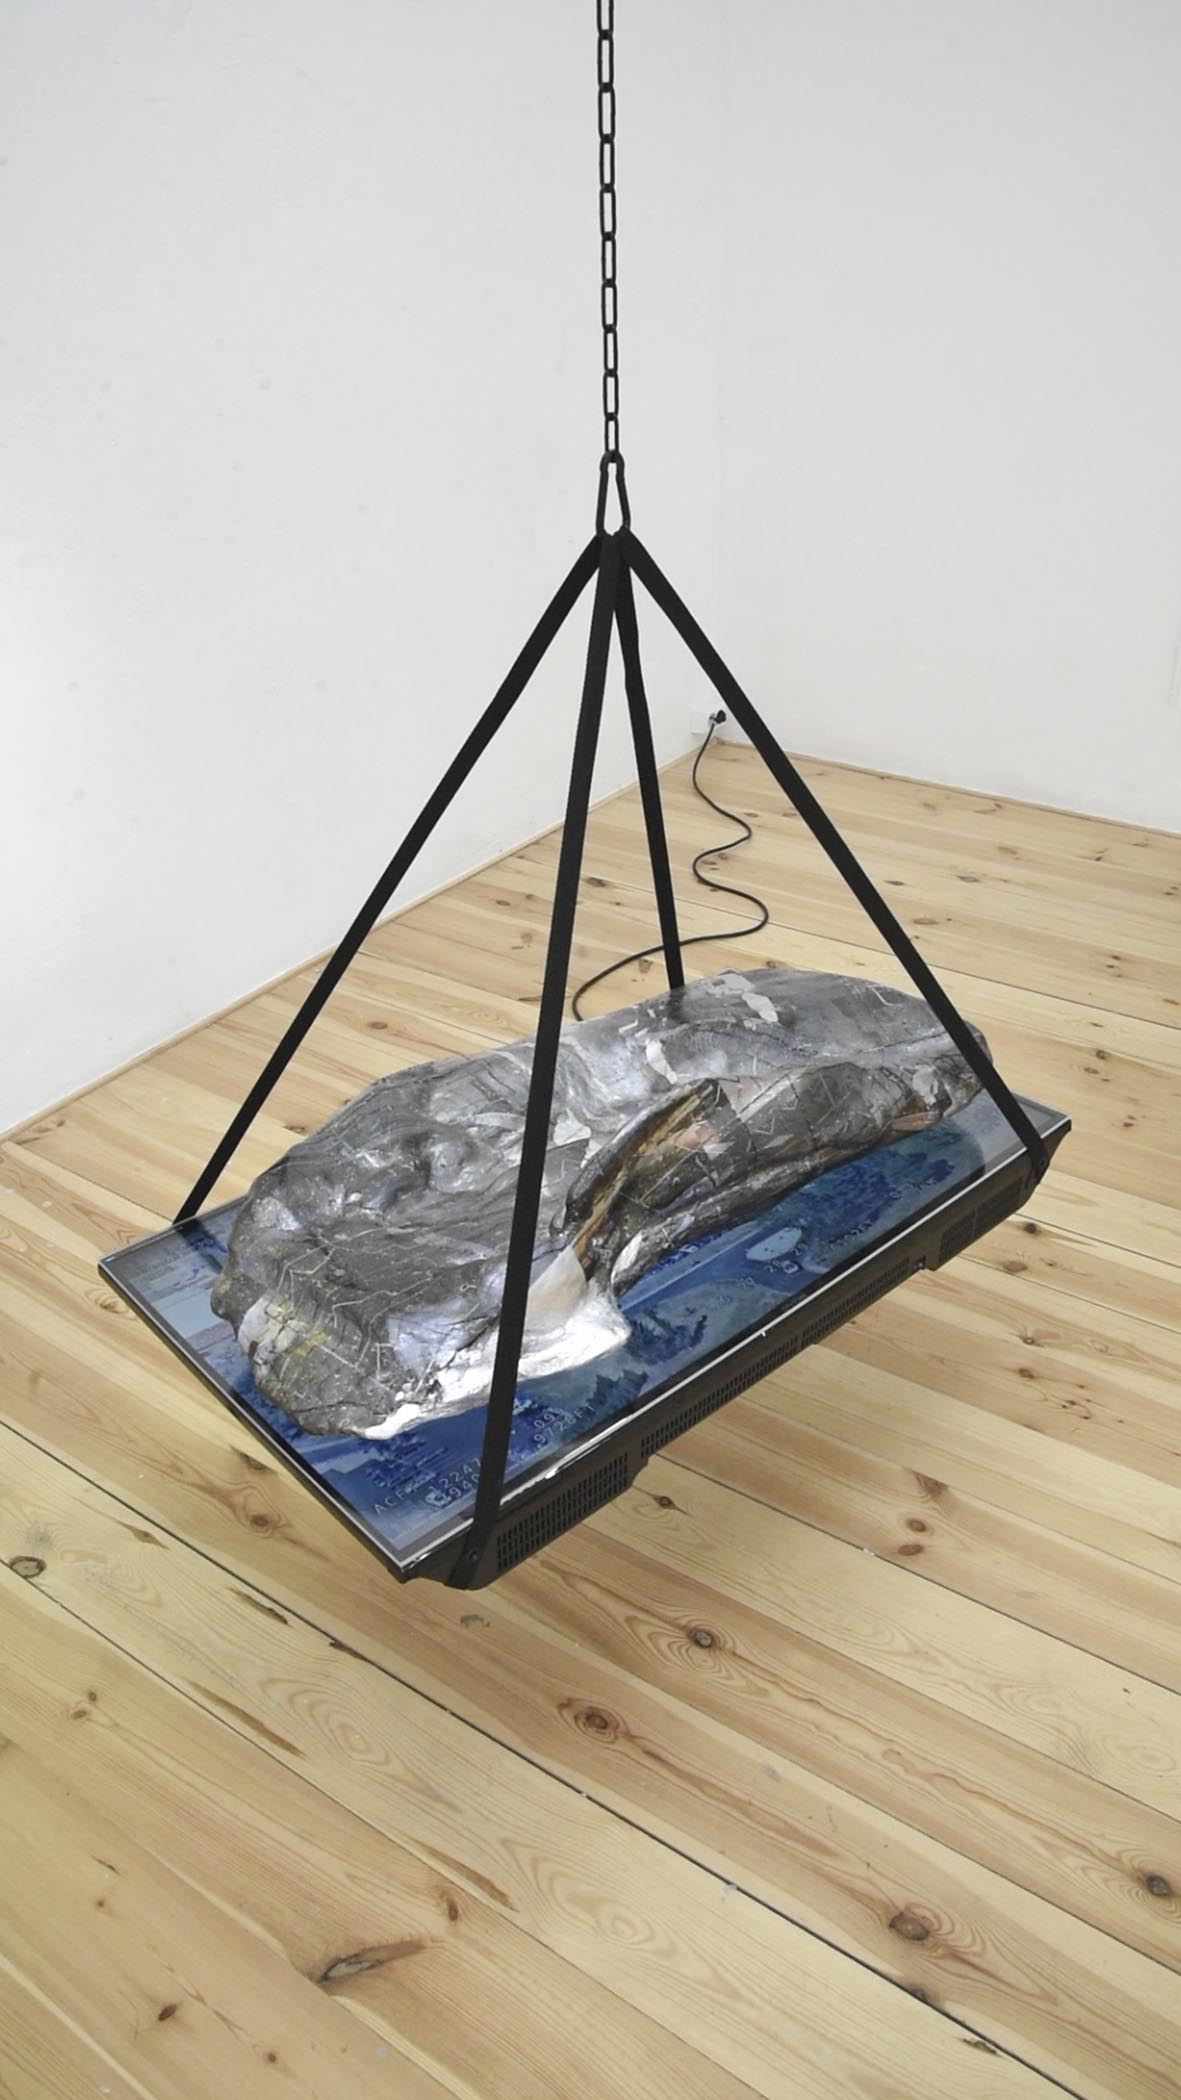 White Hot (Medical Center), 2017 Hydroprint on painted extruded polystyrene, hydrocal, acrylic, LED screen, chain, carabiners, nylon webbing, USB drive, 21 x 37 x 142 inches Forced photogrammetry models resting atop leaked military drone videos. Hydroprinted with images sourced from internet message boards.